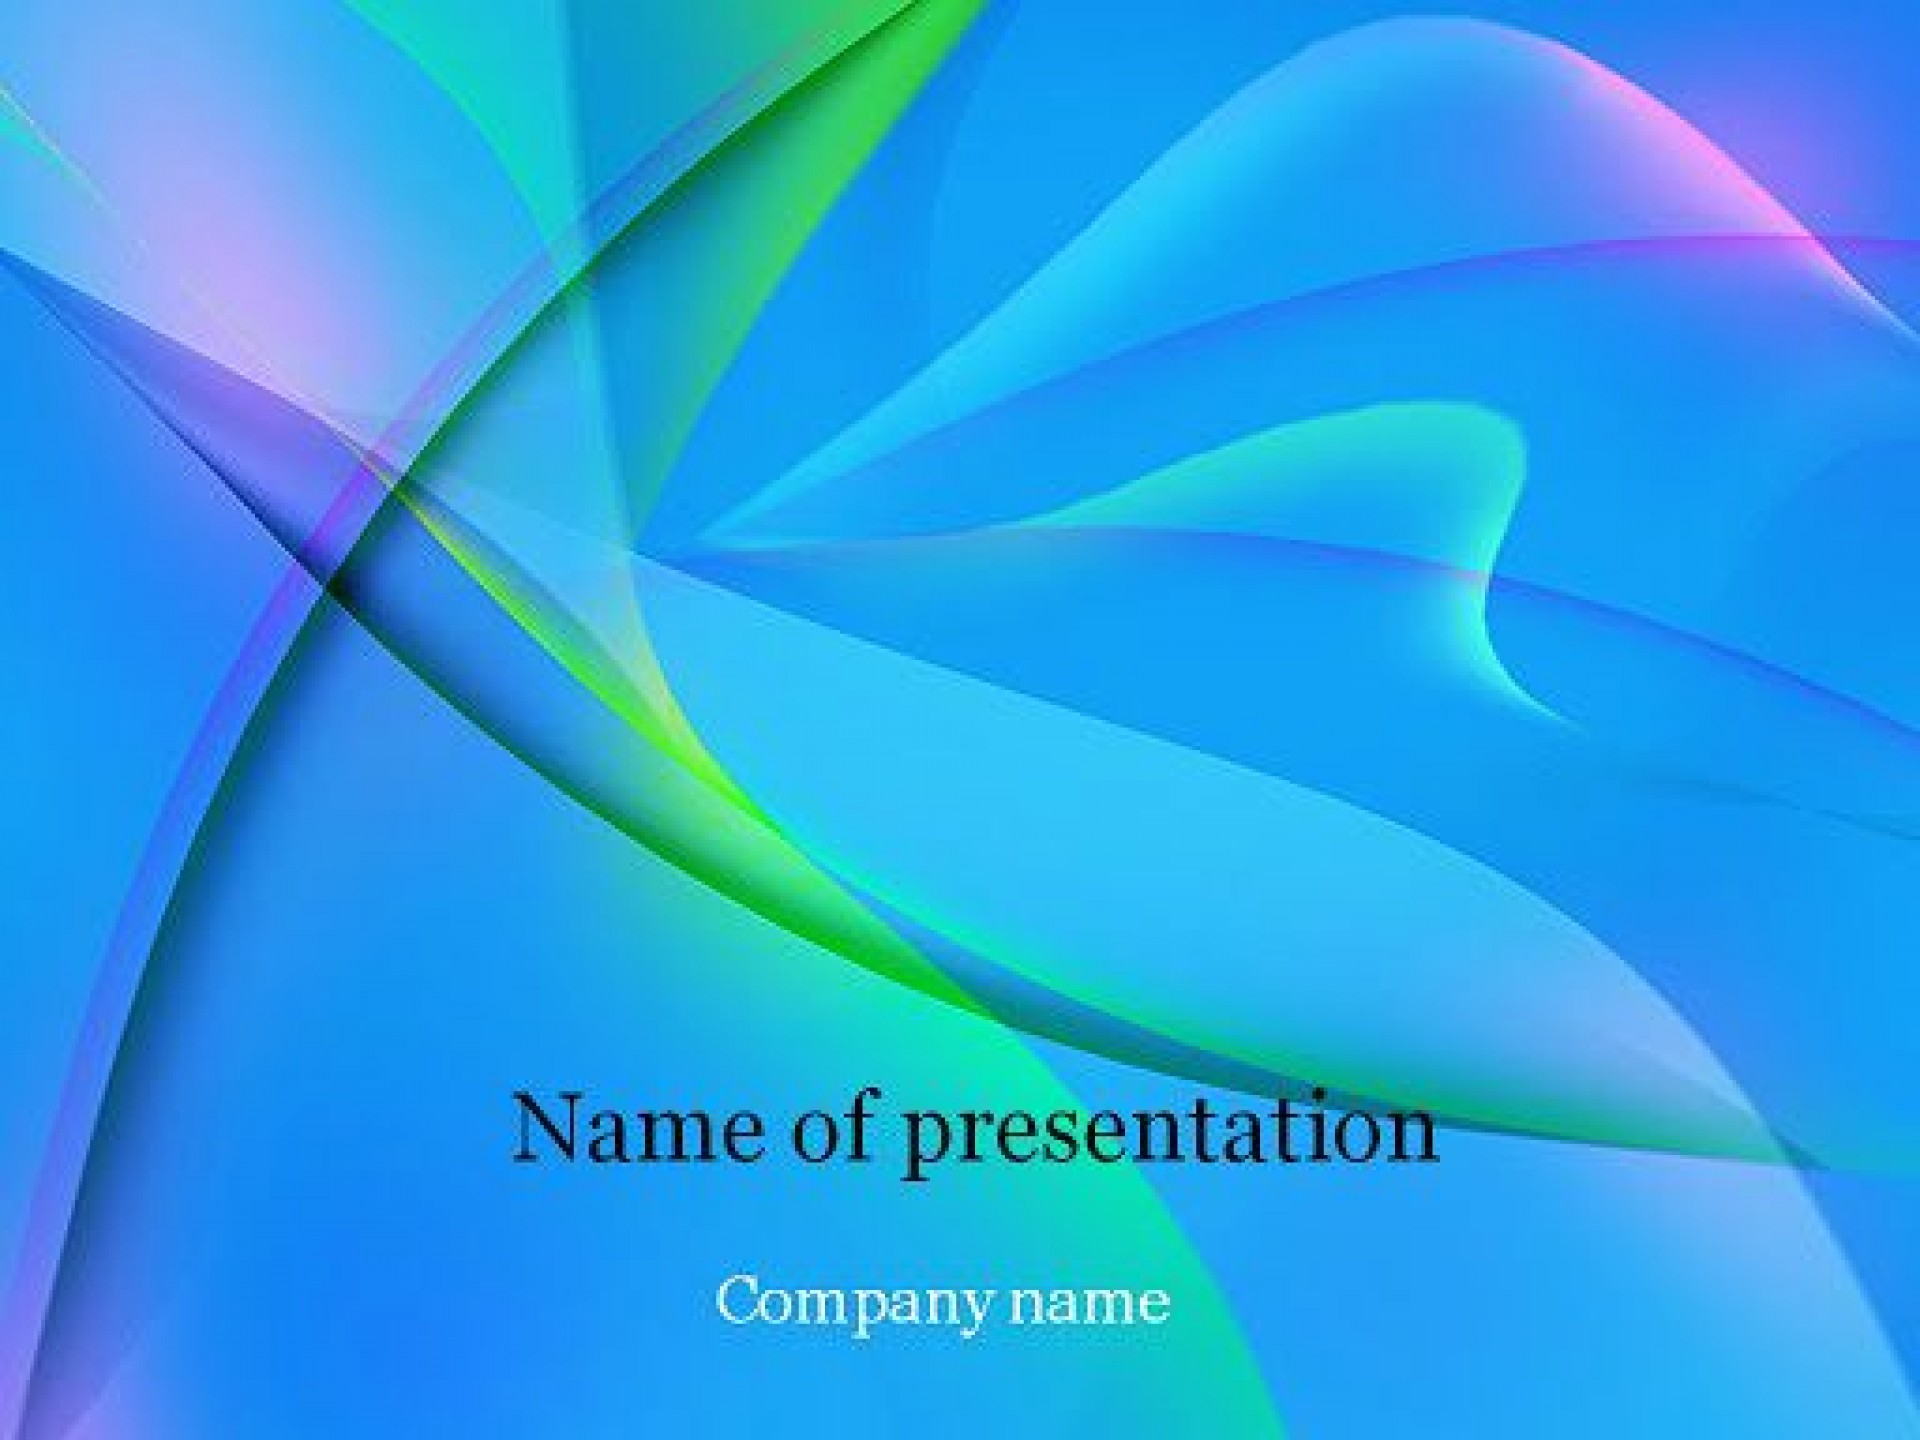 006 Stupendou 3d Animated Powerpoint Template Free Download 2013 High Definition 1920